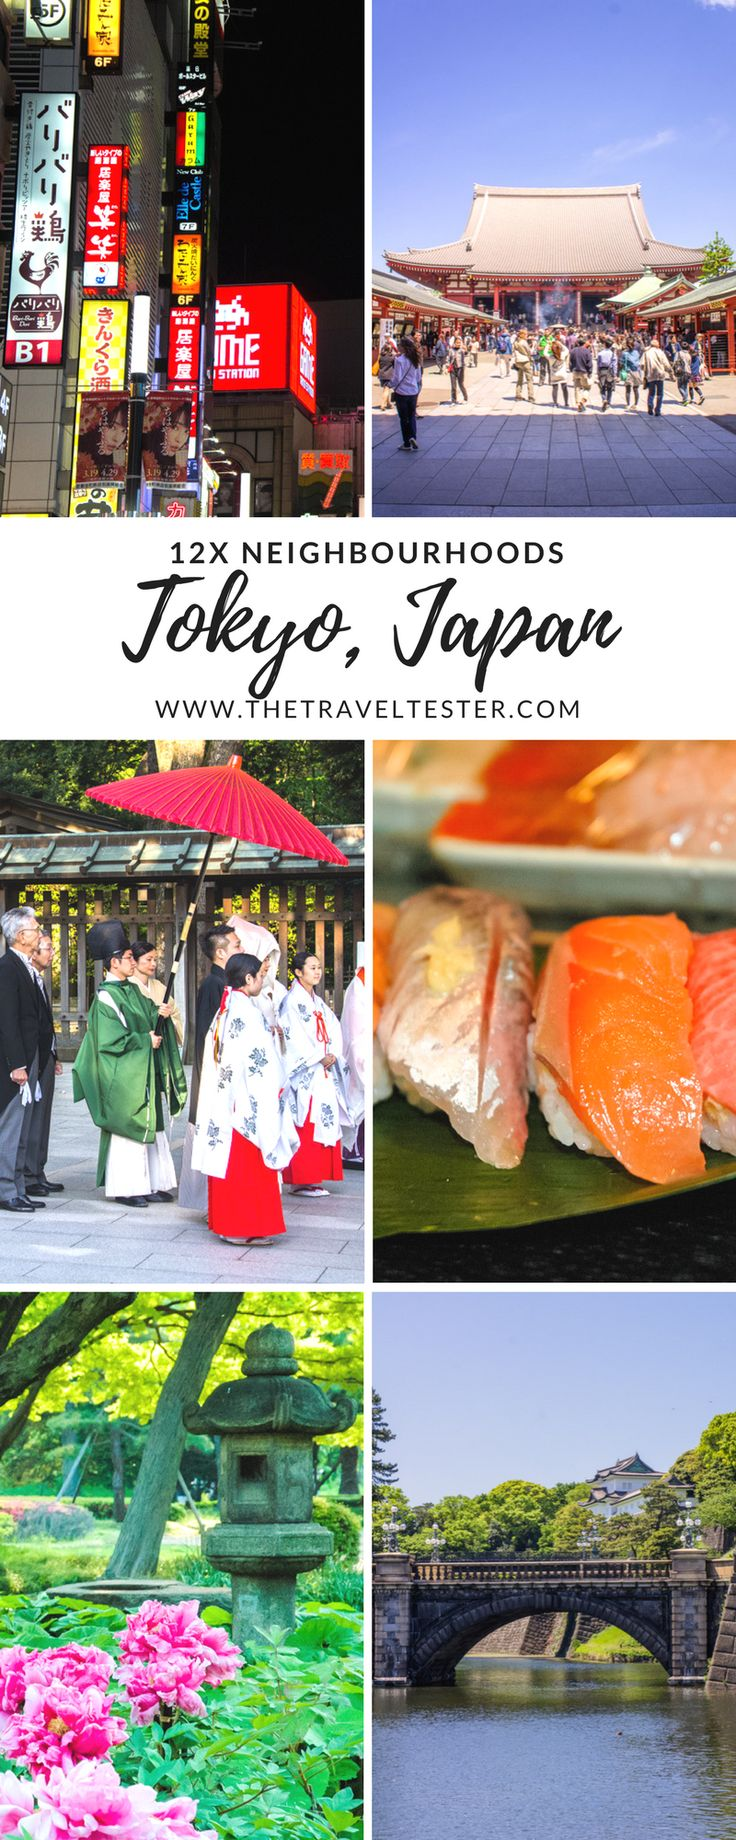 Are you visiting Tokyo in Japan soon, but not sure where to start? Here is a handy overview of 12 of the most interesting neighbourhoods in Tokyo, so you can start planning your trip! Suggestions by The Travel Tester